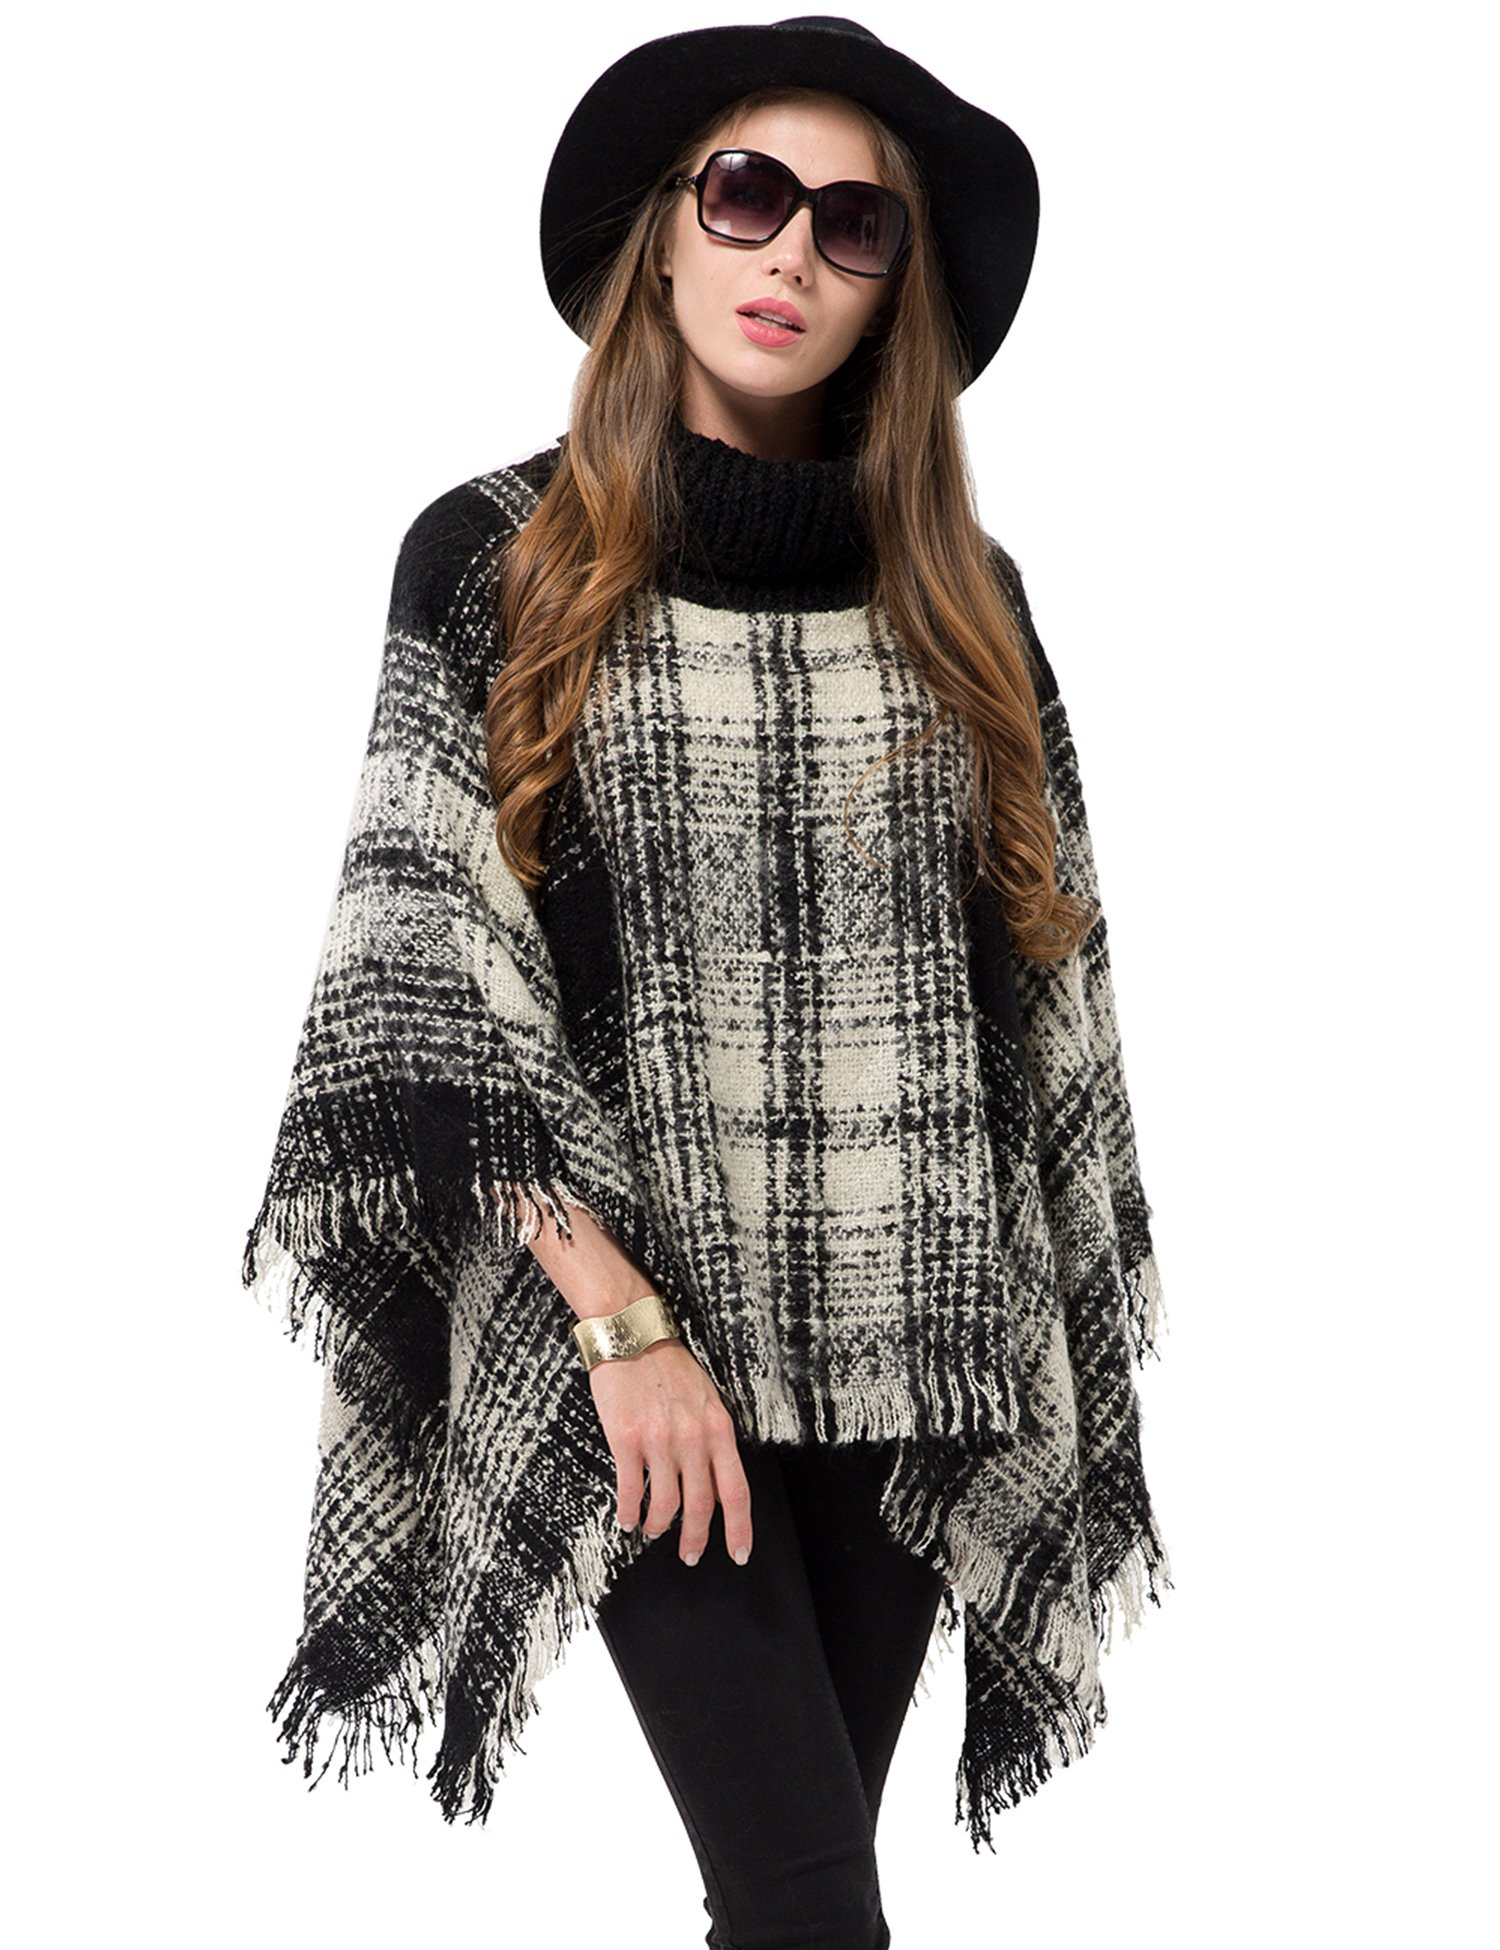 OTIOTI Womens Knitted Pullover Poncho Sweater Winter Turtleneck Cape Tassel Shawl Black and White Plaid